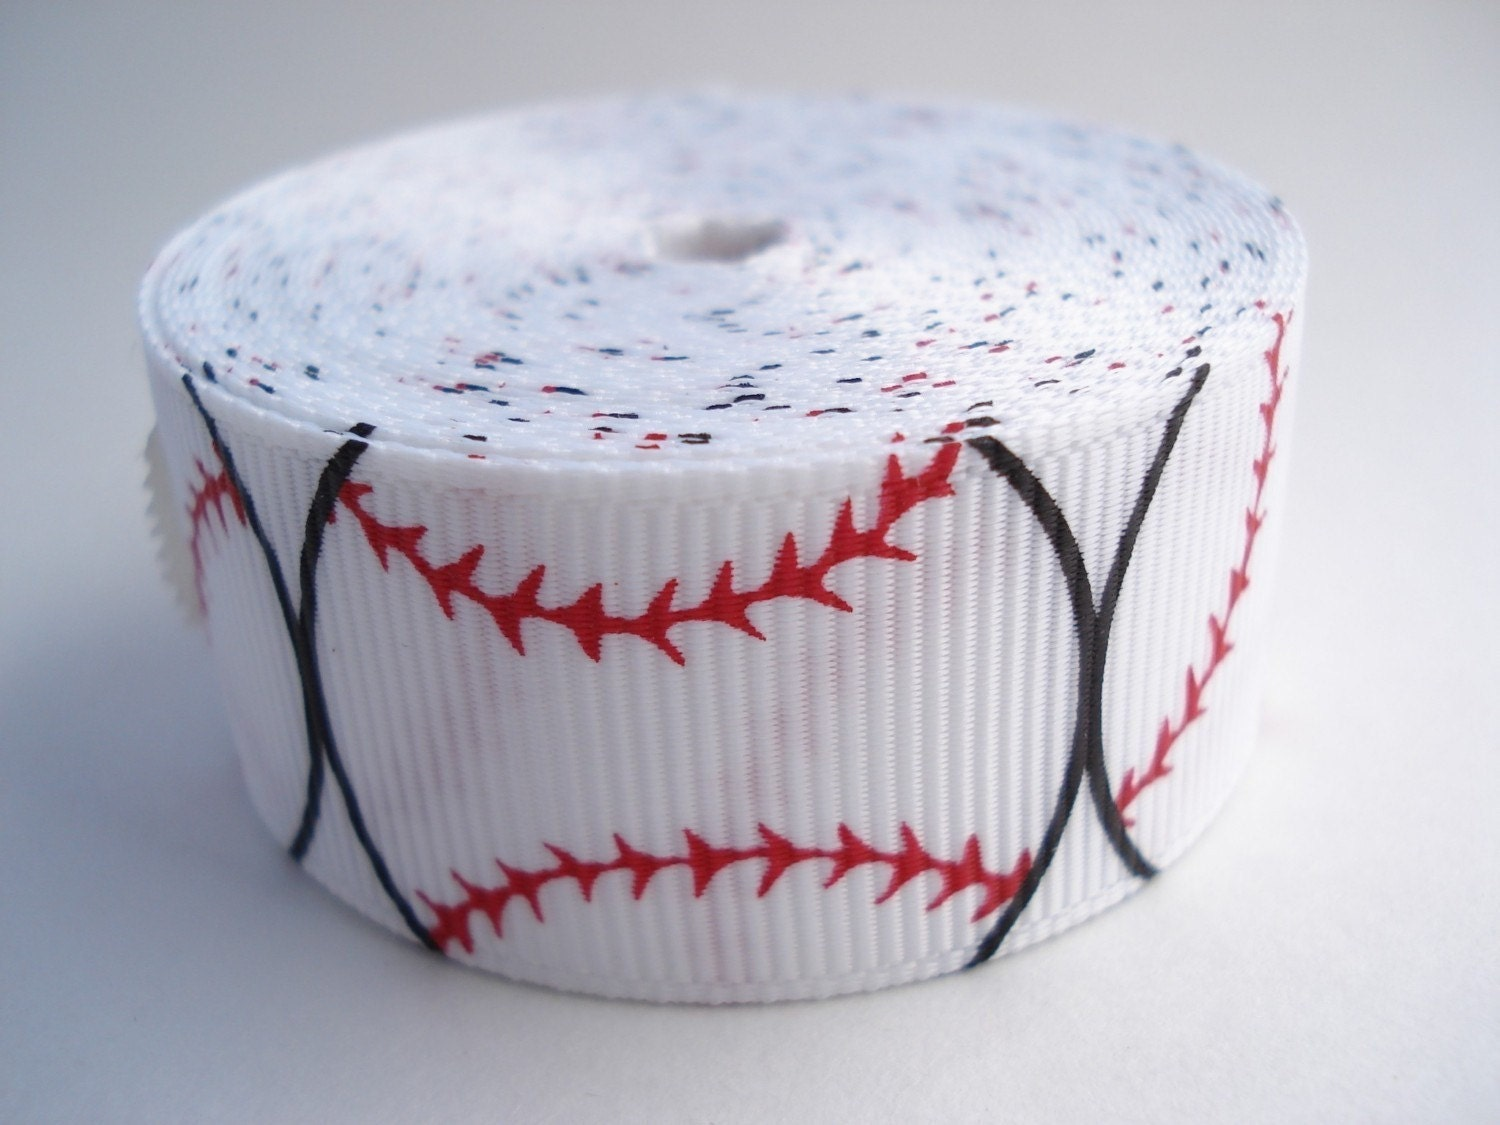 5 yards - 7/8 inch wide Grosgrain Ribbon with  Baseball Prints - Sports Ribbon